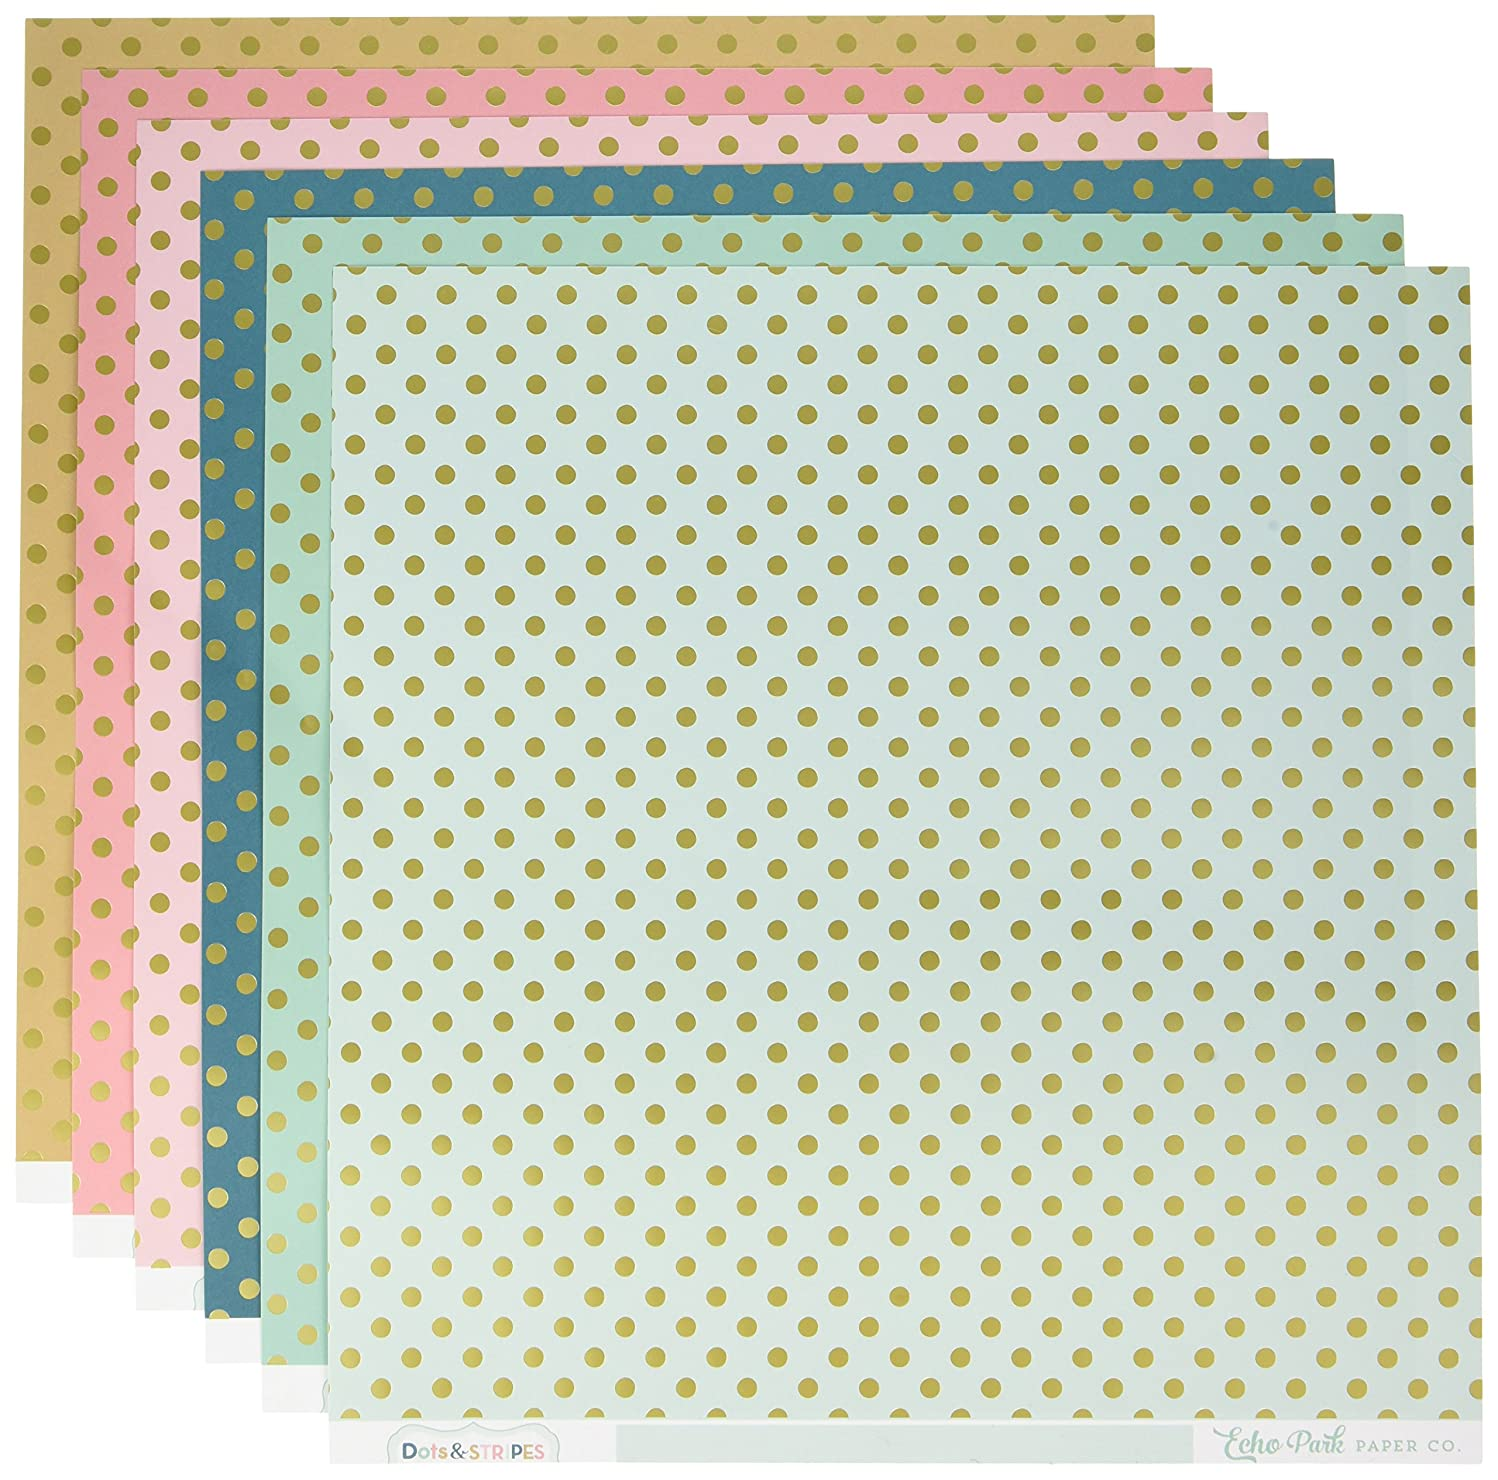 Echo Park Paper Company DS16007 Dots & Stripes with Gold Foil 12x12 Collection Kit